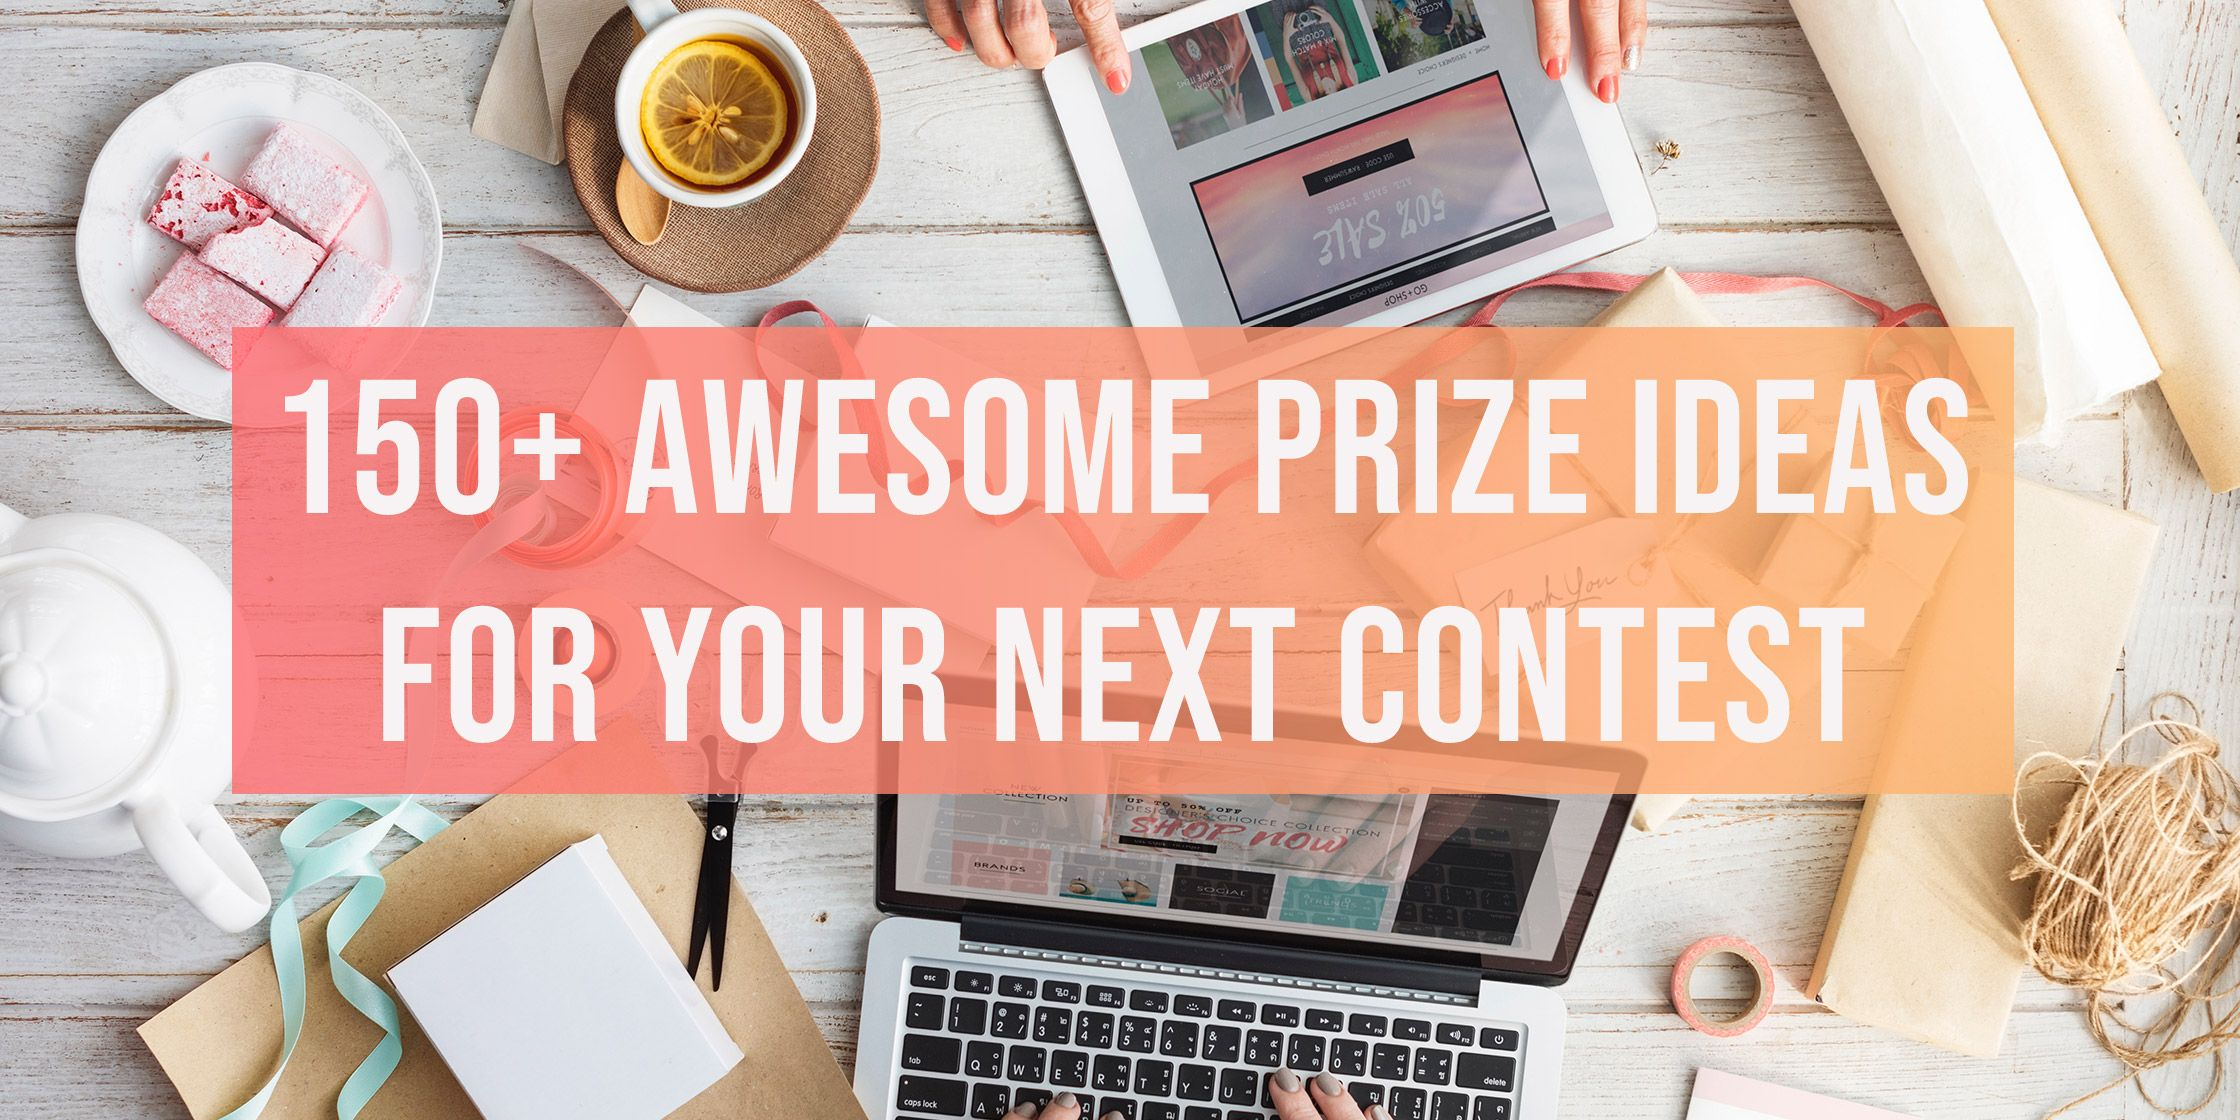 150+ Awesome Prize Ideas For Your Next Contest